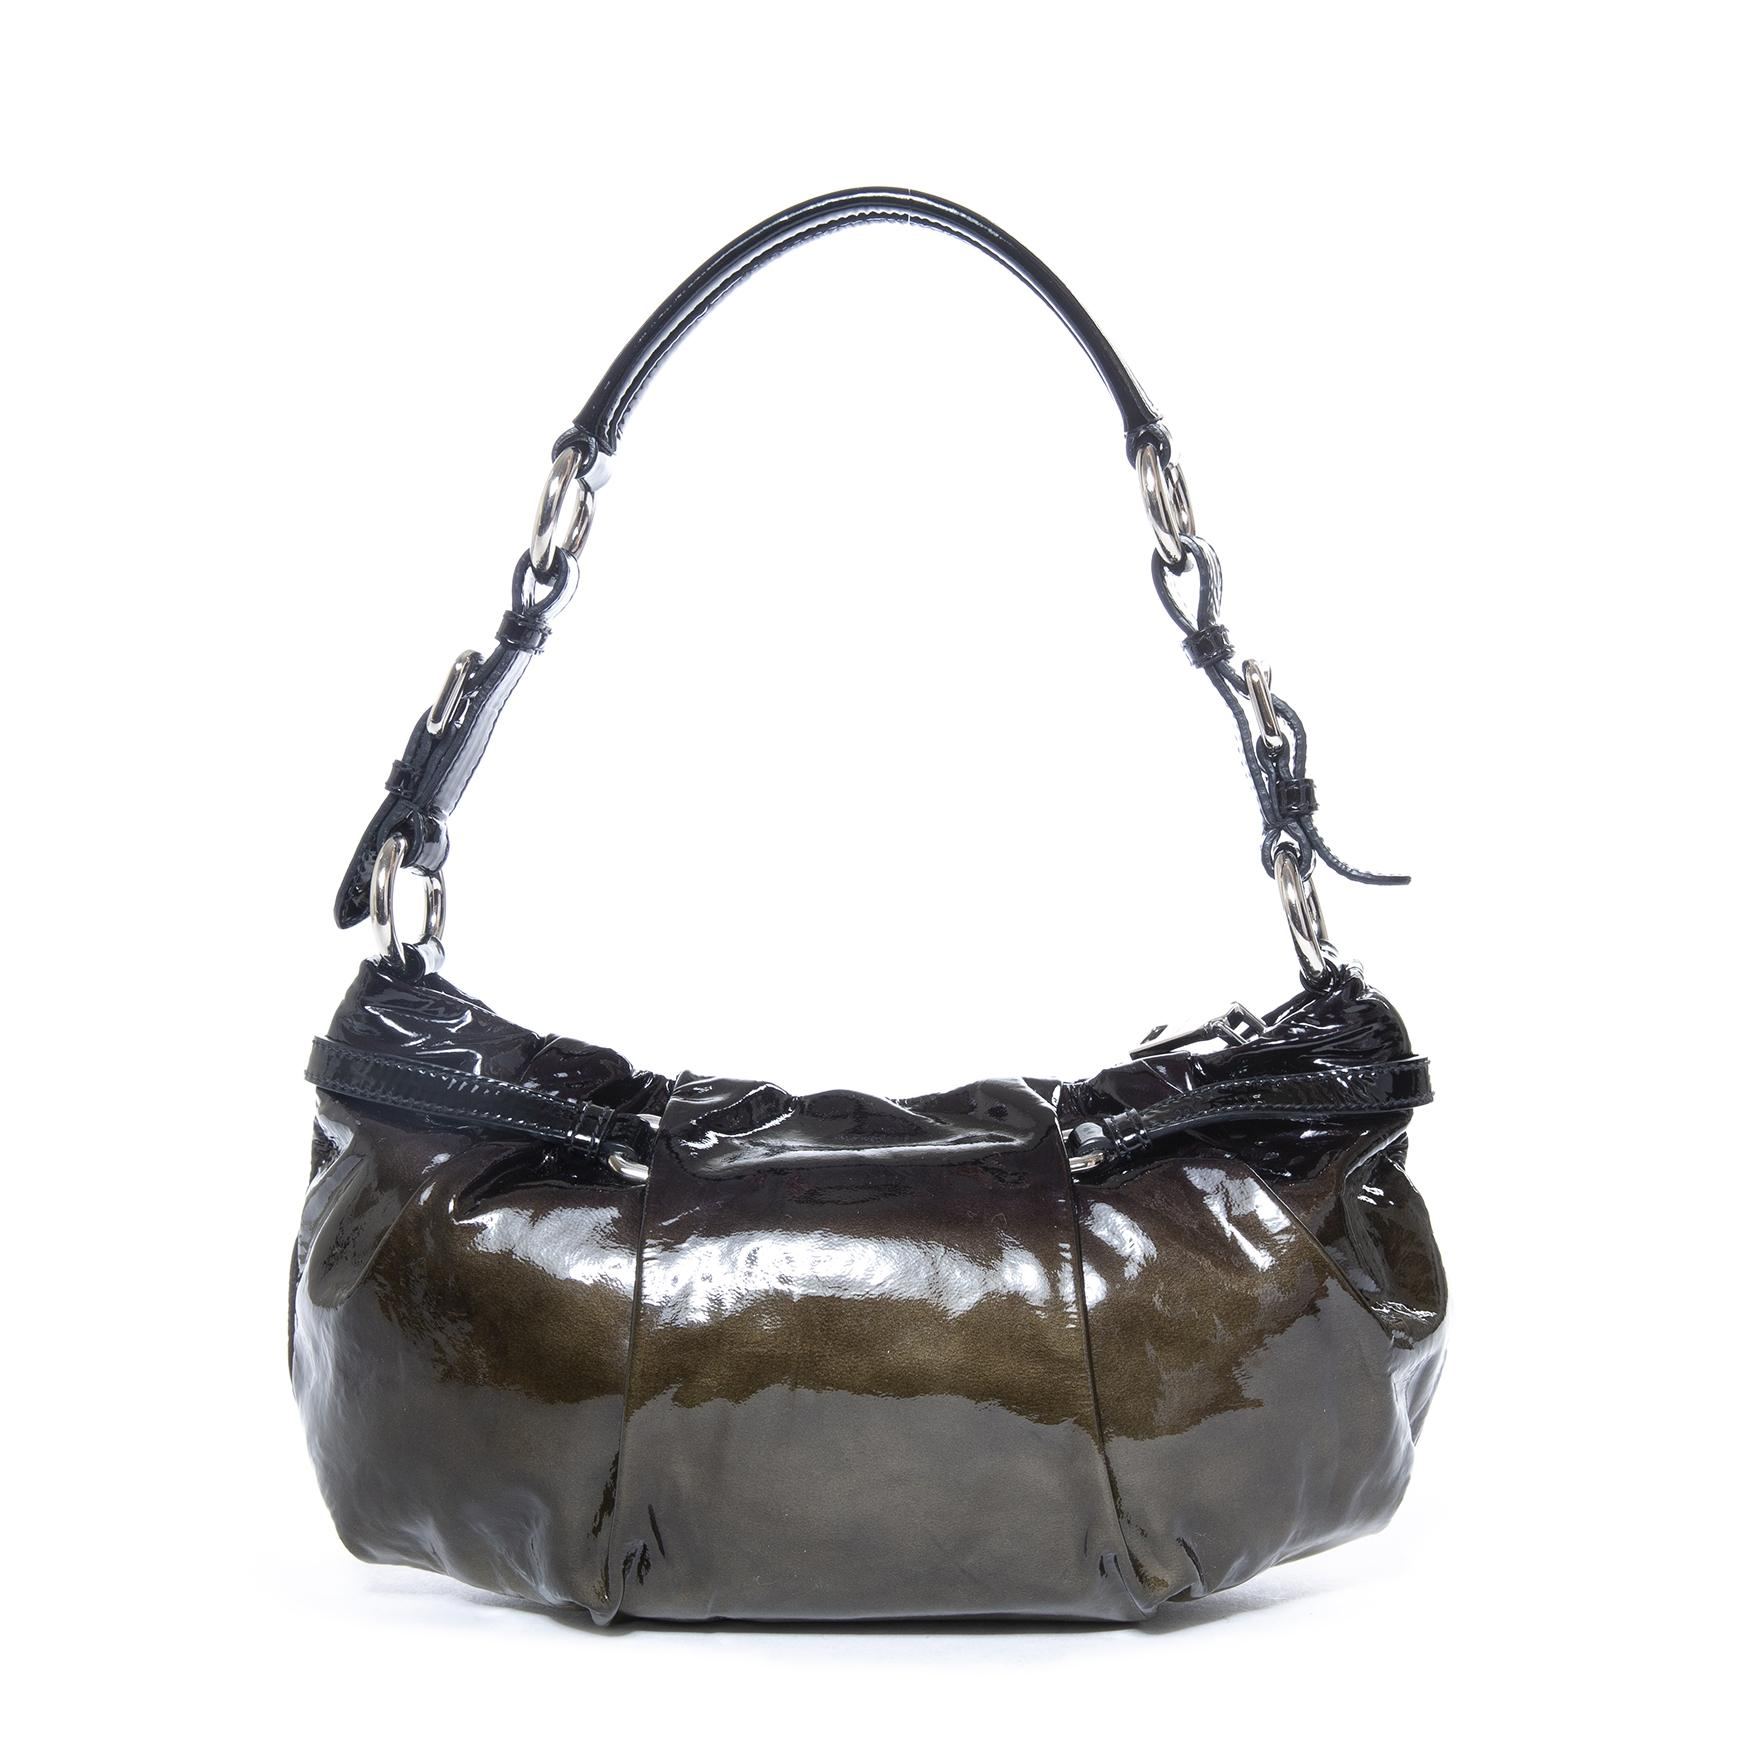 acef1b869657 Prada Ombre Patent Baguette Shoulderbag For Sale at 1stdibs